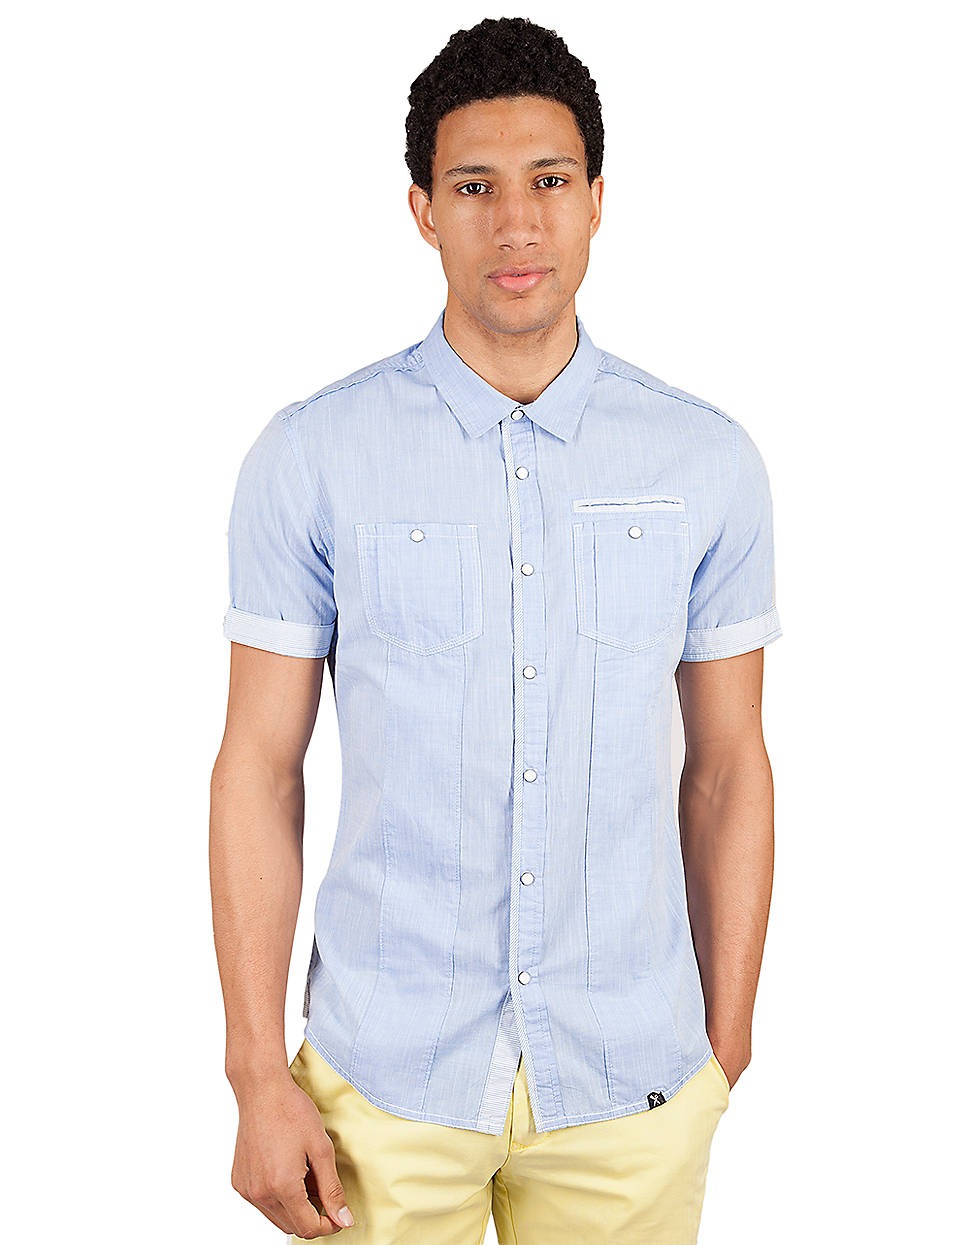 Marc ecko pysche sport shirt in blue for men sky blue lyst for Marc ecko dress shirts